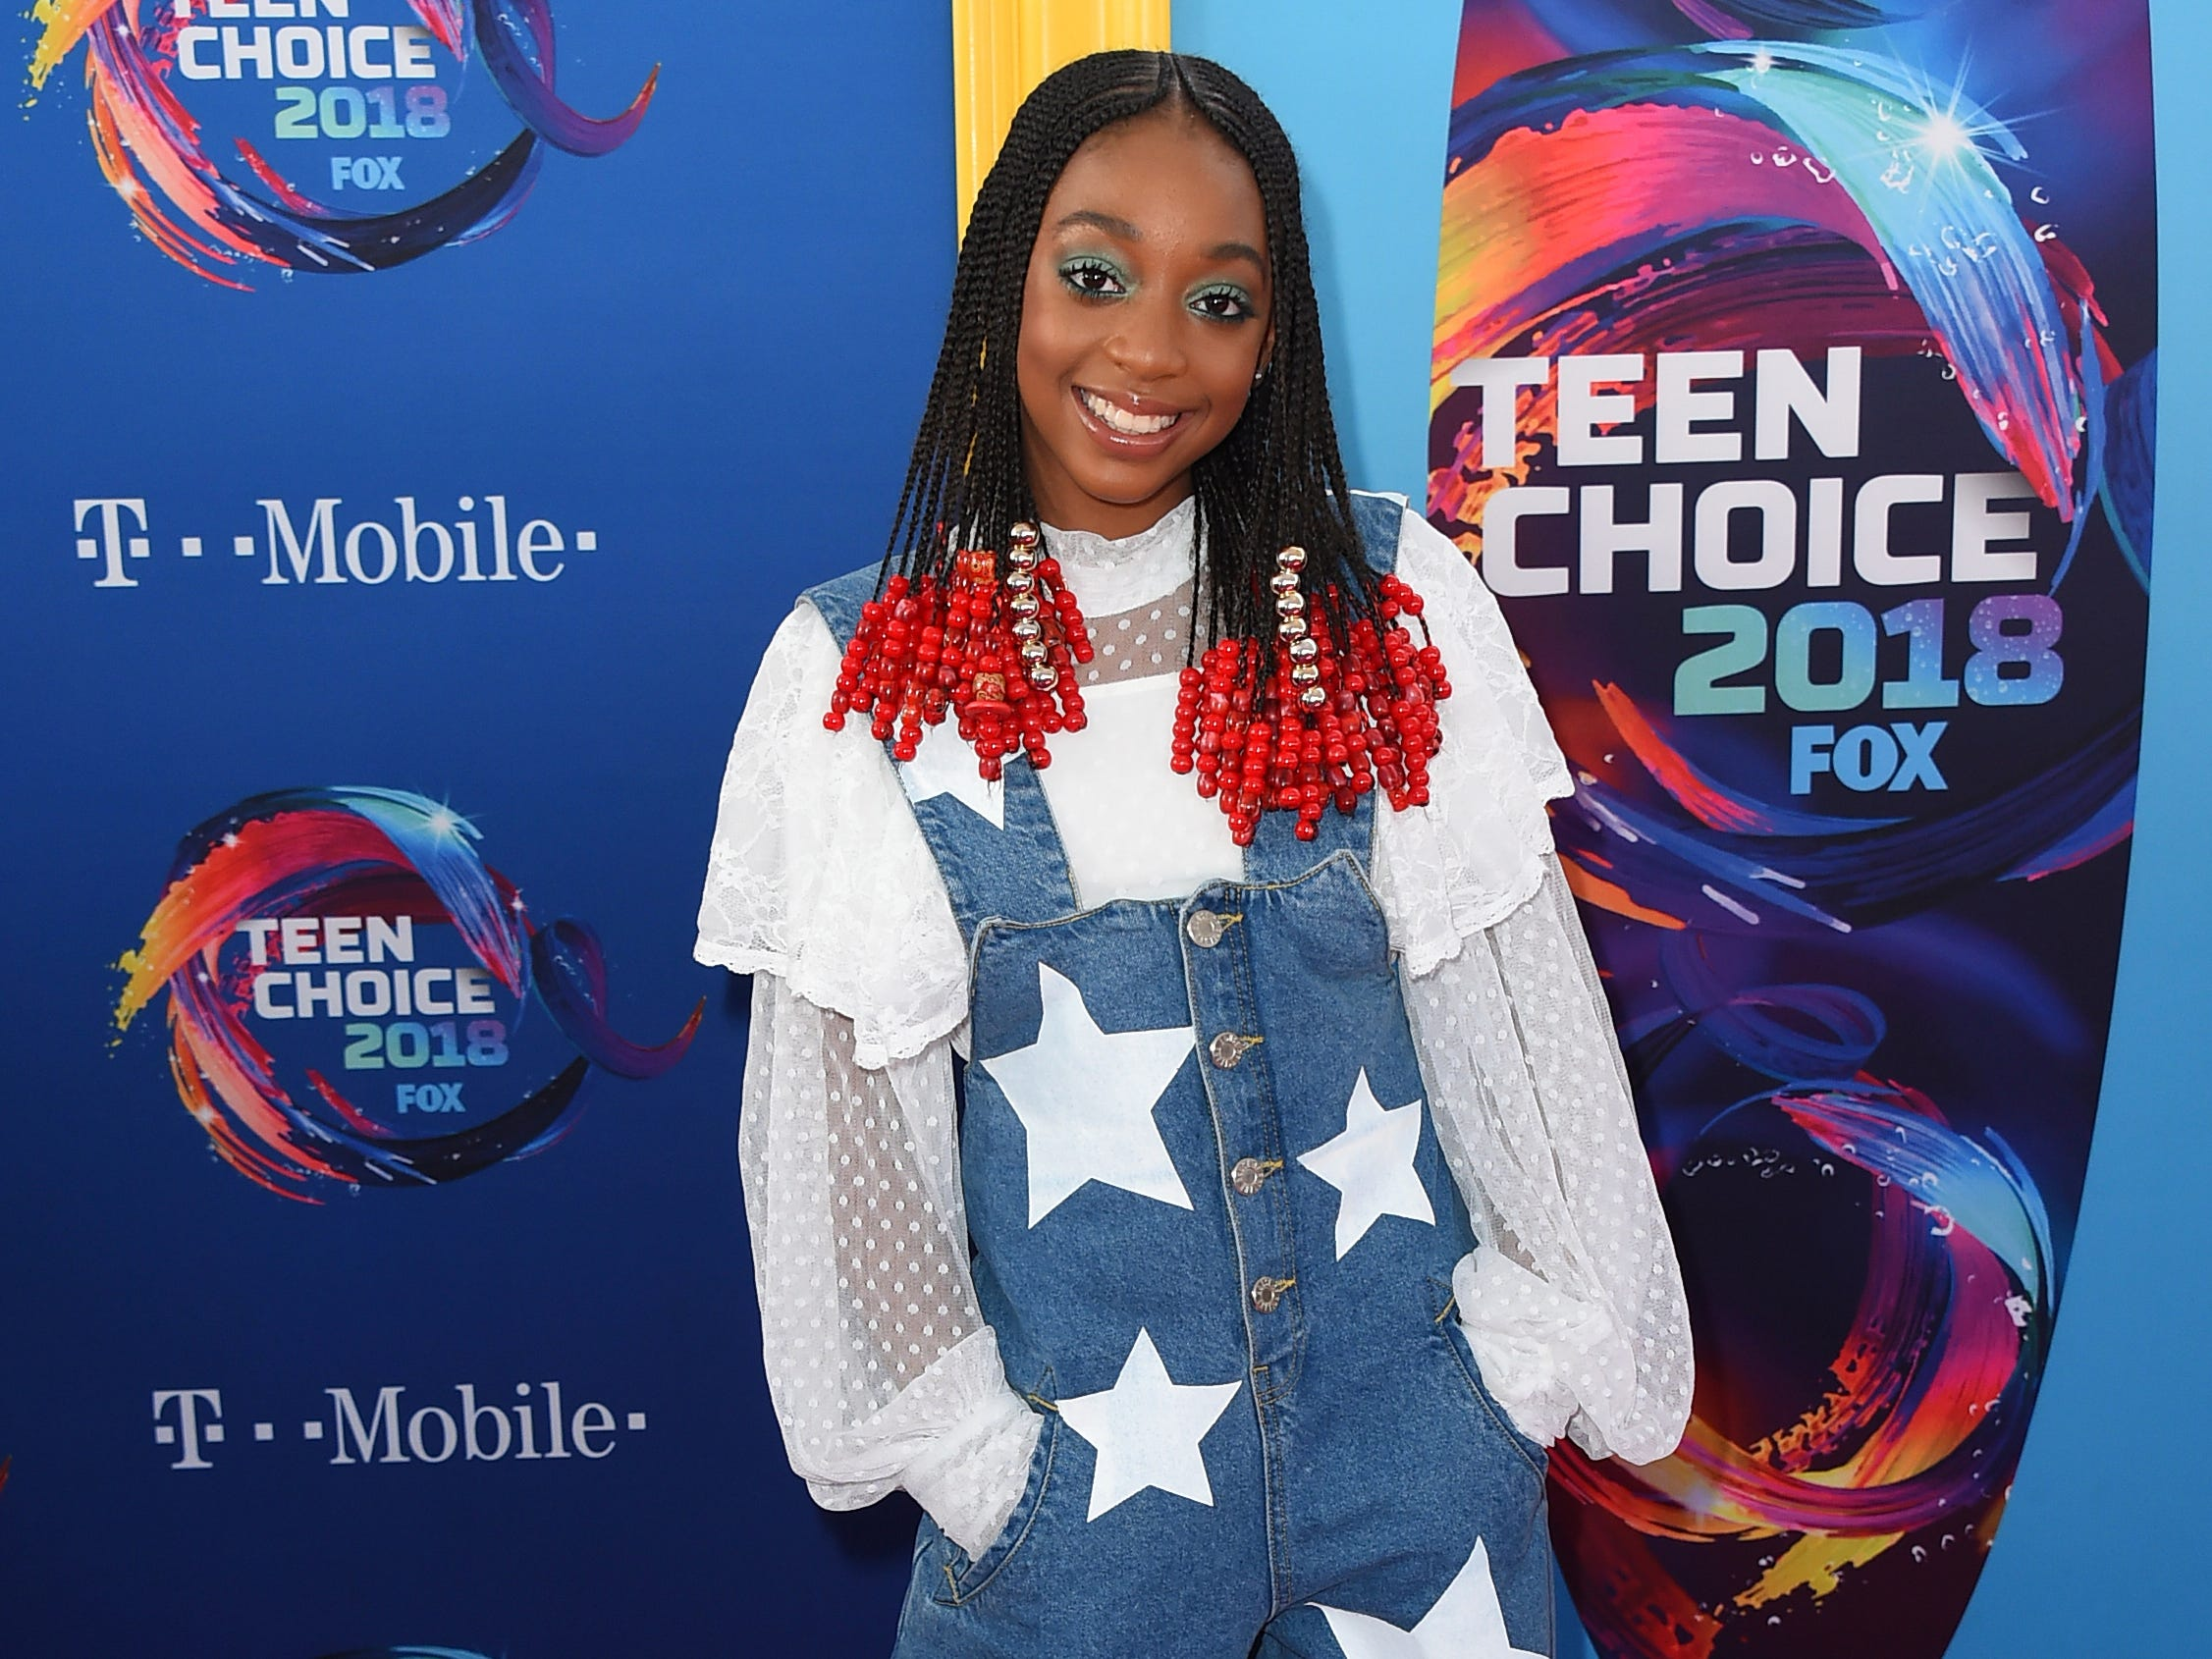 Eris Baker arrives at the Teen Choice Awards at The Forum on Sunday, Aug. 12, 2018, in Inglewood, Calif. (Photo by Jordan Strauss/Invision/AP) ORG XMIT: CAPM154